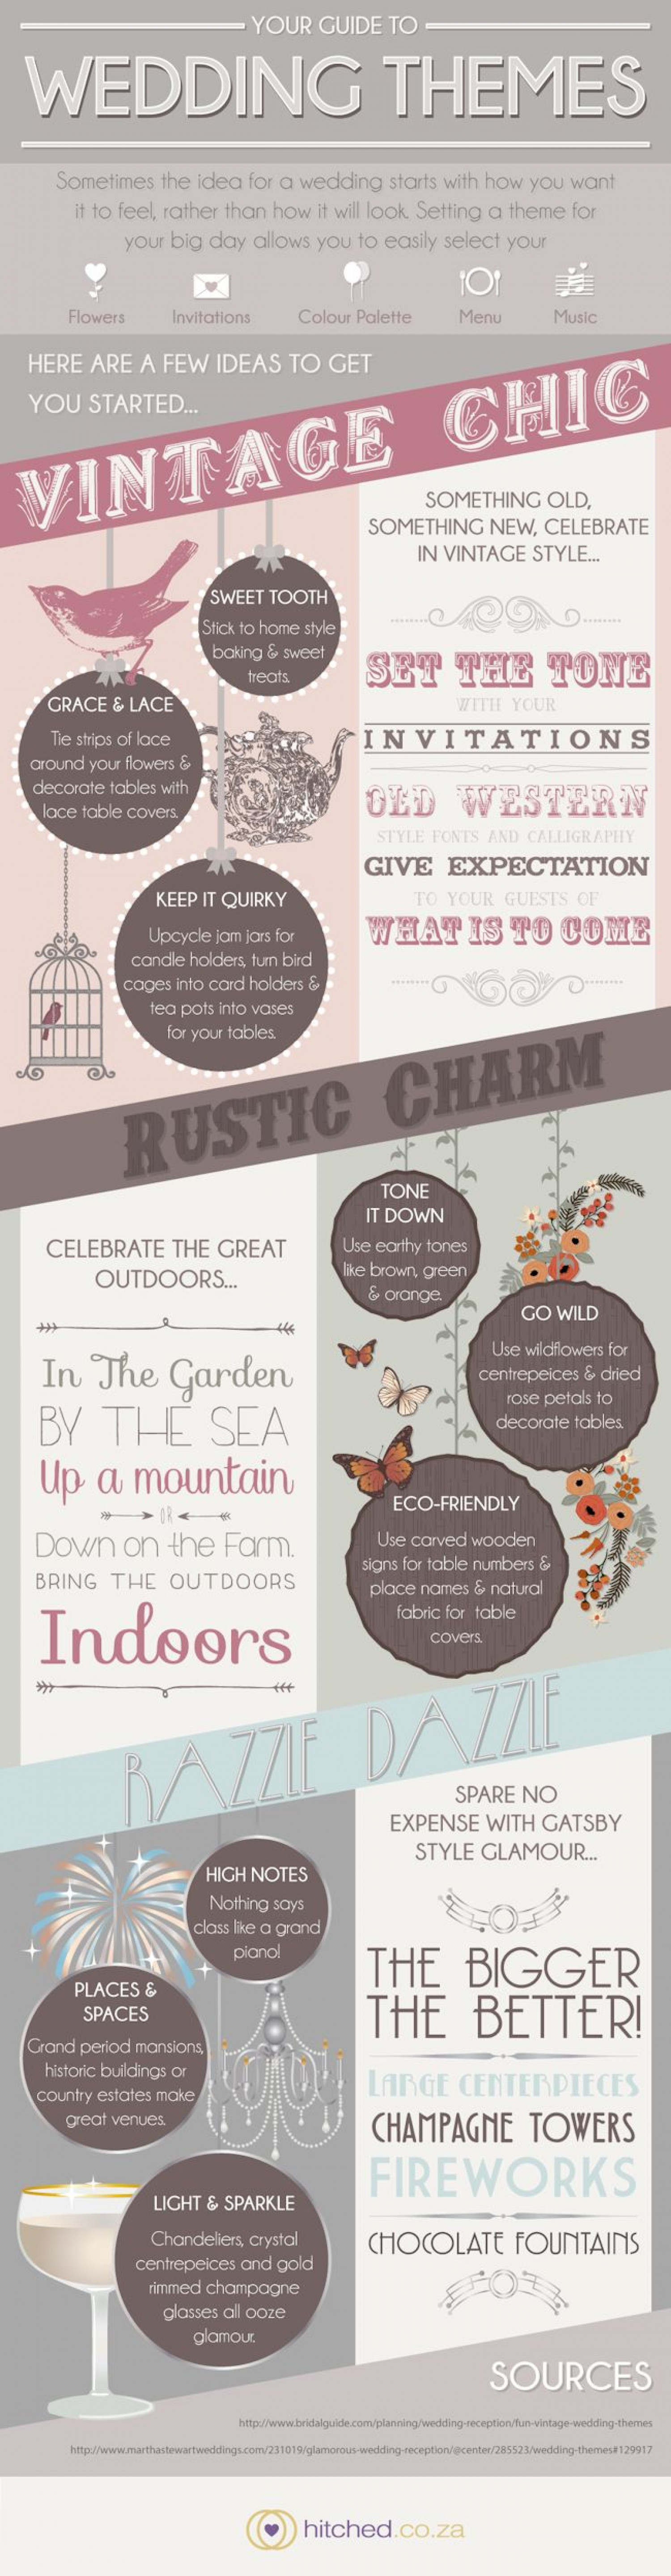 Your Guide To Wedding Themes Infographic